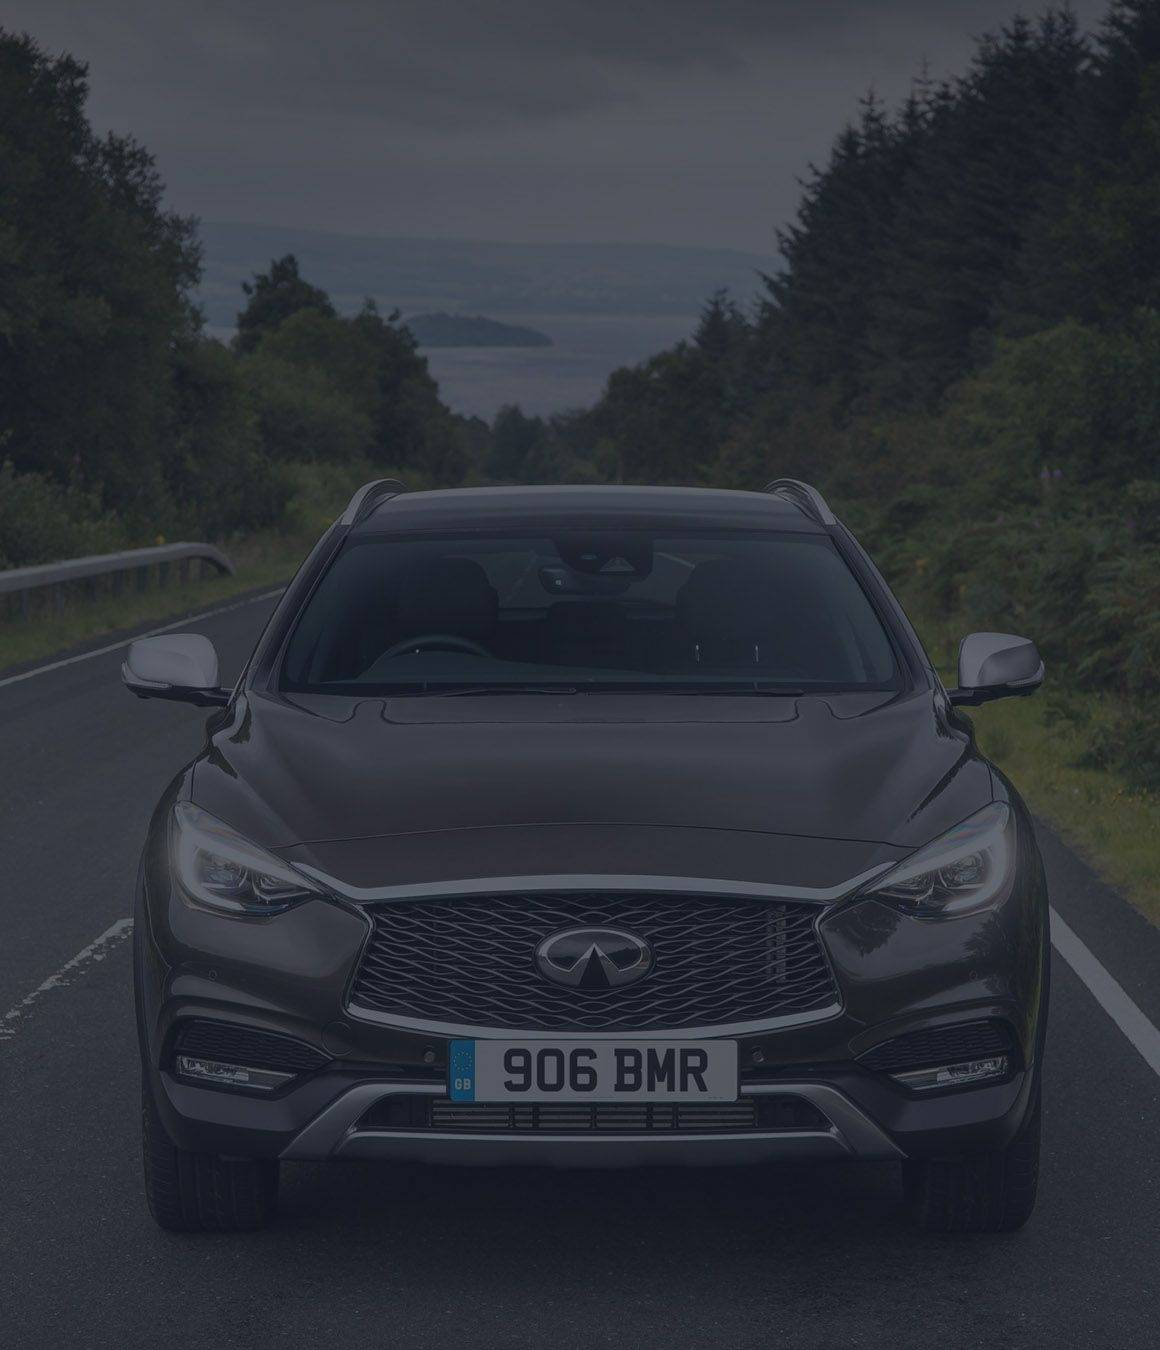 Compare Infiniti car finance from leading brands